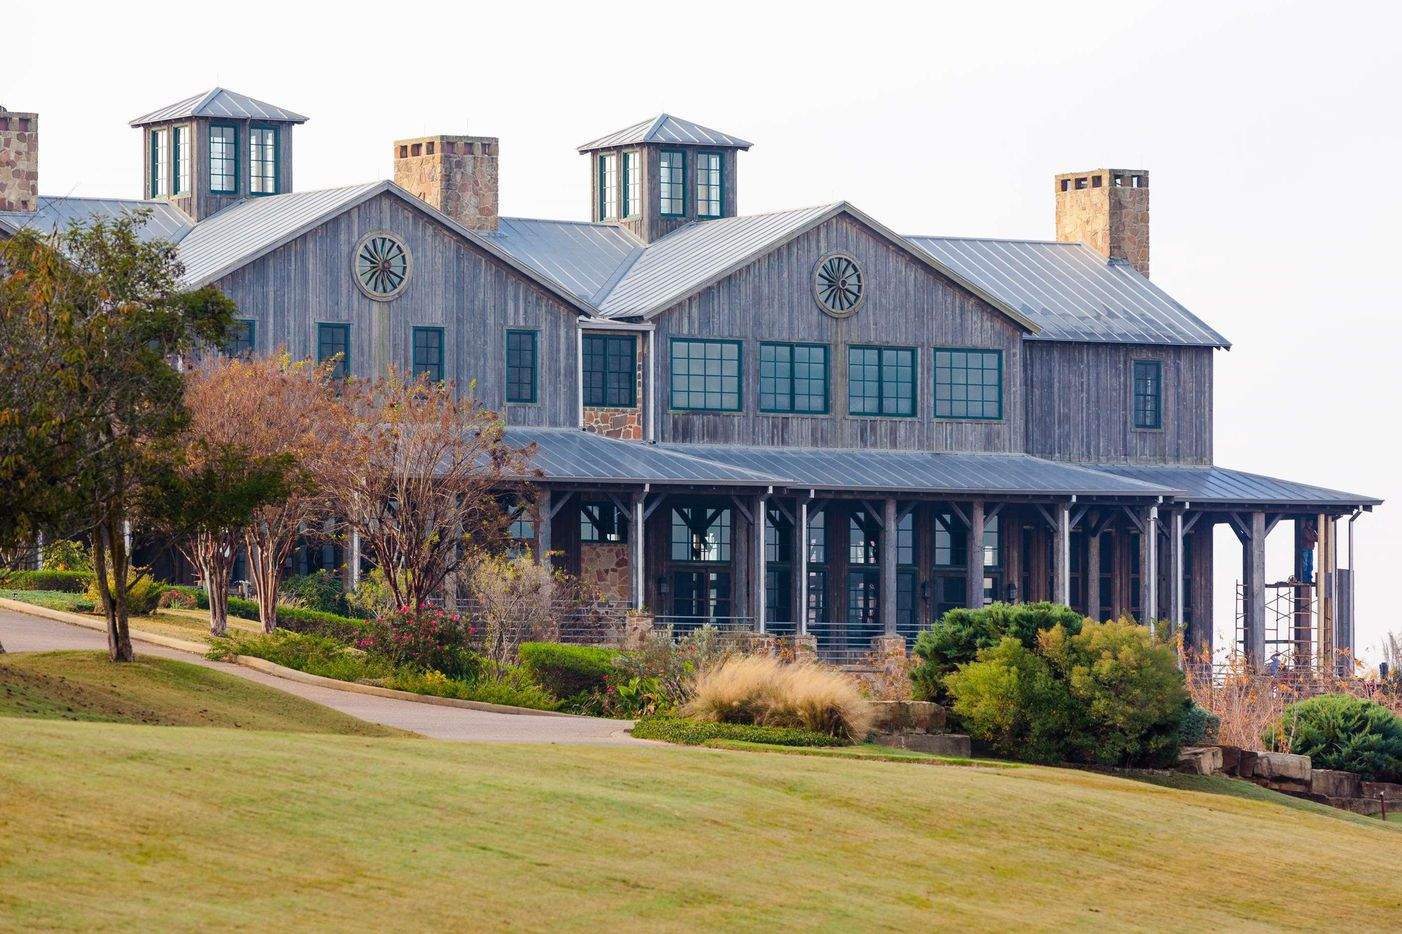 Barefoot Lodge near Athens was priced at $59.5 million